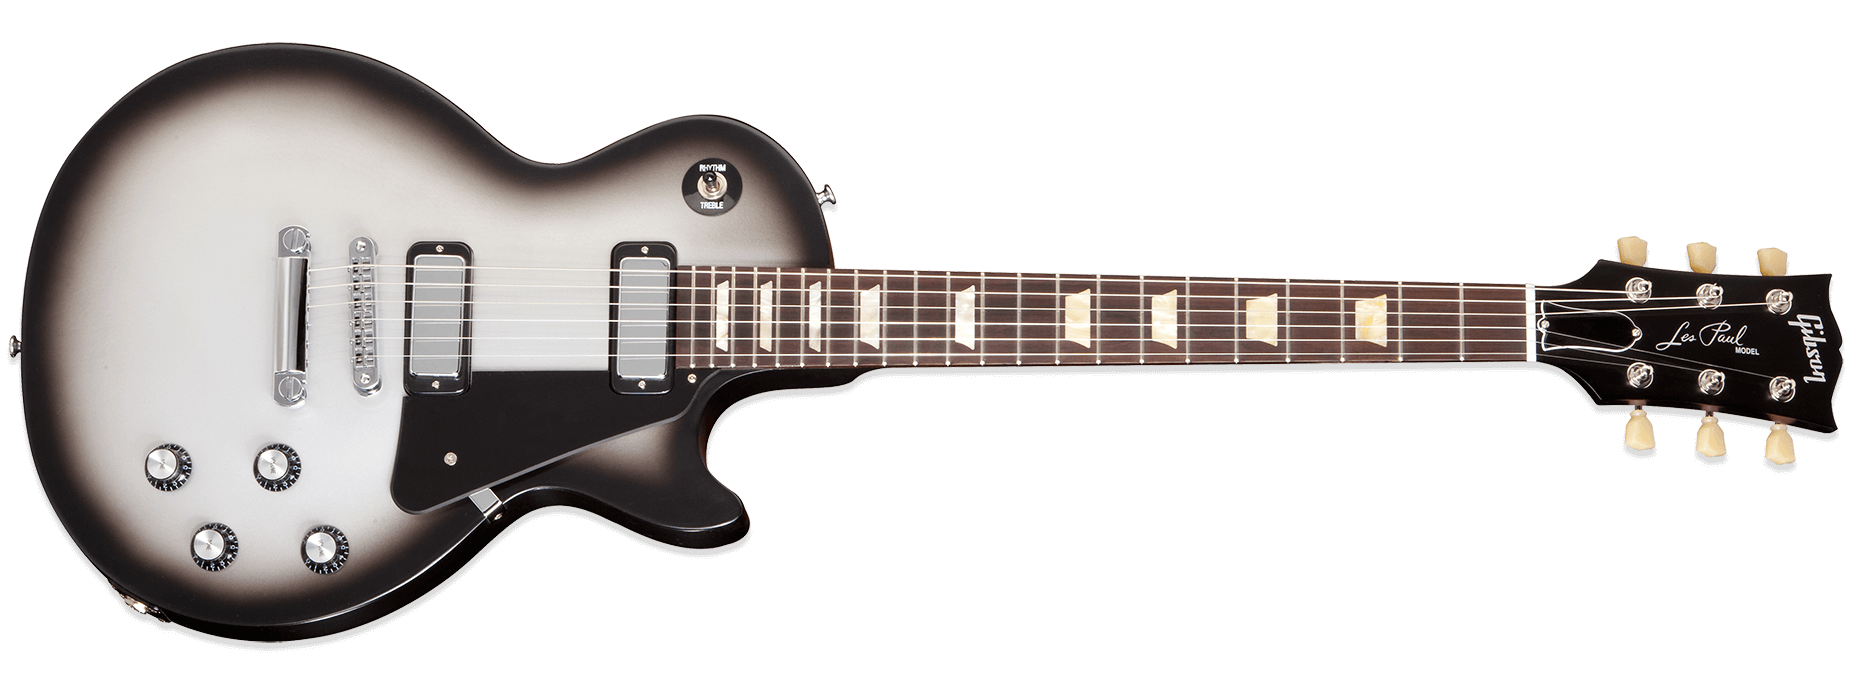 Front view of Gibson Les Paul Guitar